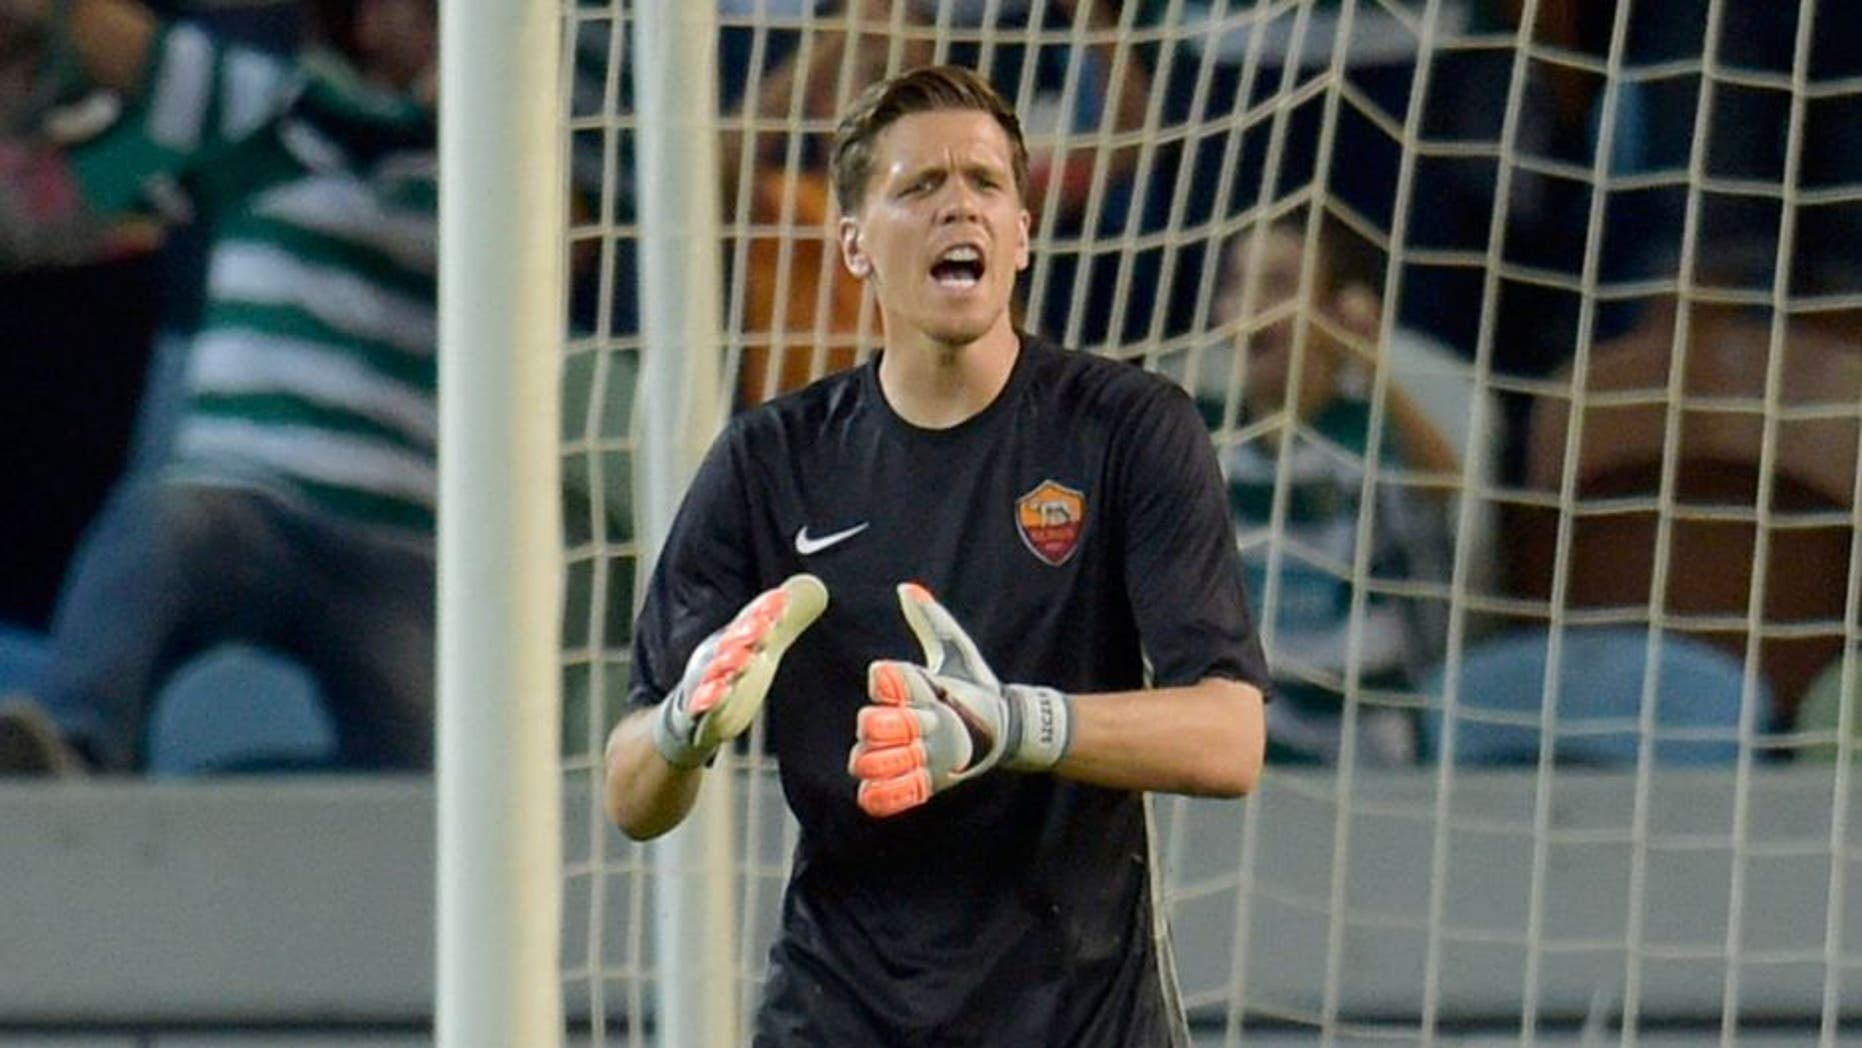 LISBON, PORTUGAL - AUGUST 01: AS Roma player Wojciech Szczesny reacts during the pre-season friendly match between Sporting CP and AS Roma at Estadio Jose Alvalade on August 1, 2015 in Lisbon, Portugal. (Photo by Luciano Rossi/AS Roma via Getty Images)